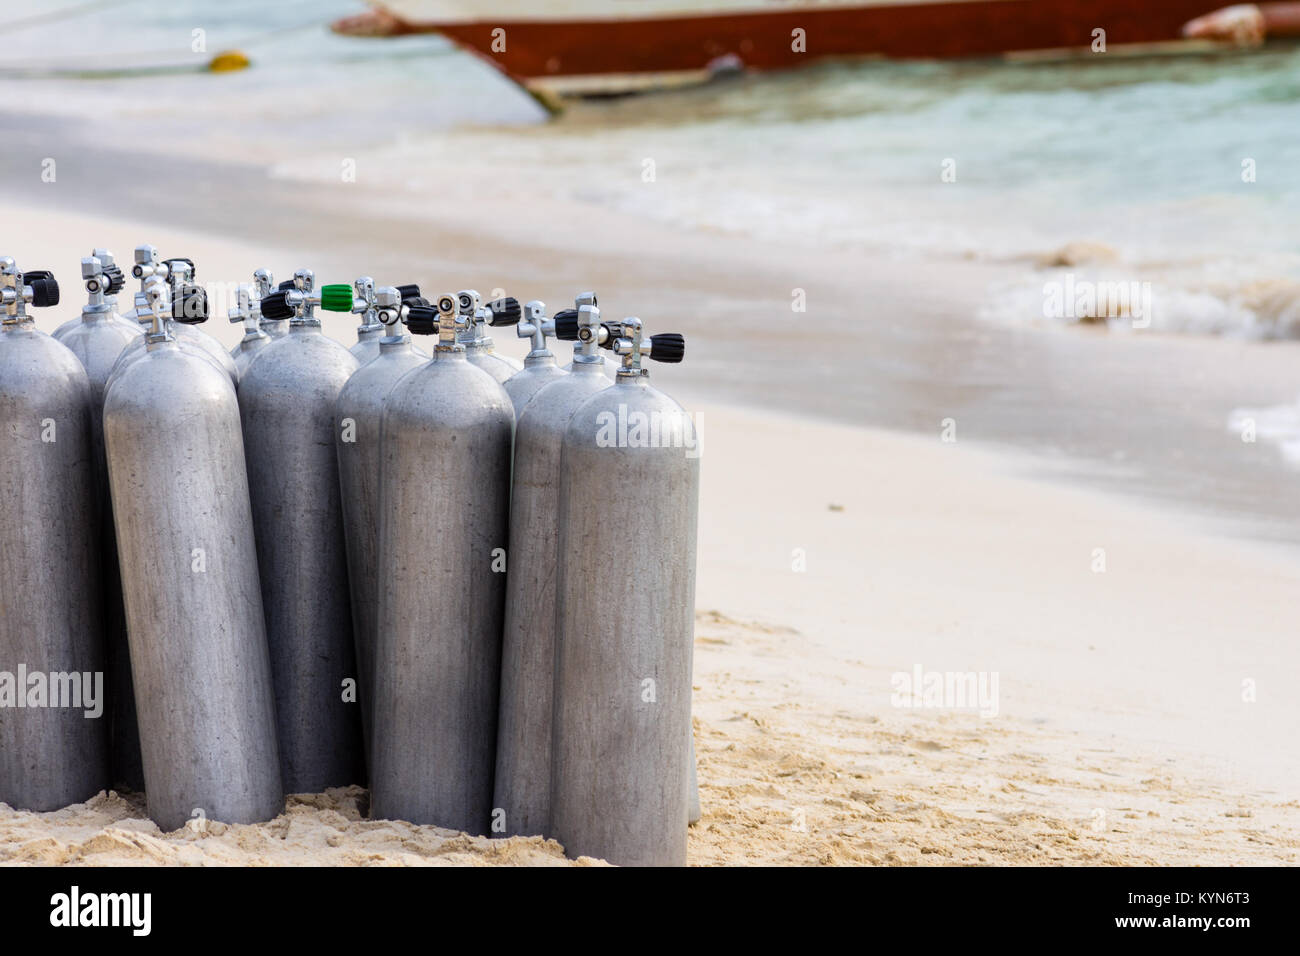 A collection of scuba divers air taks on a tropical white sand beach. - Stock Image